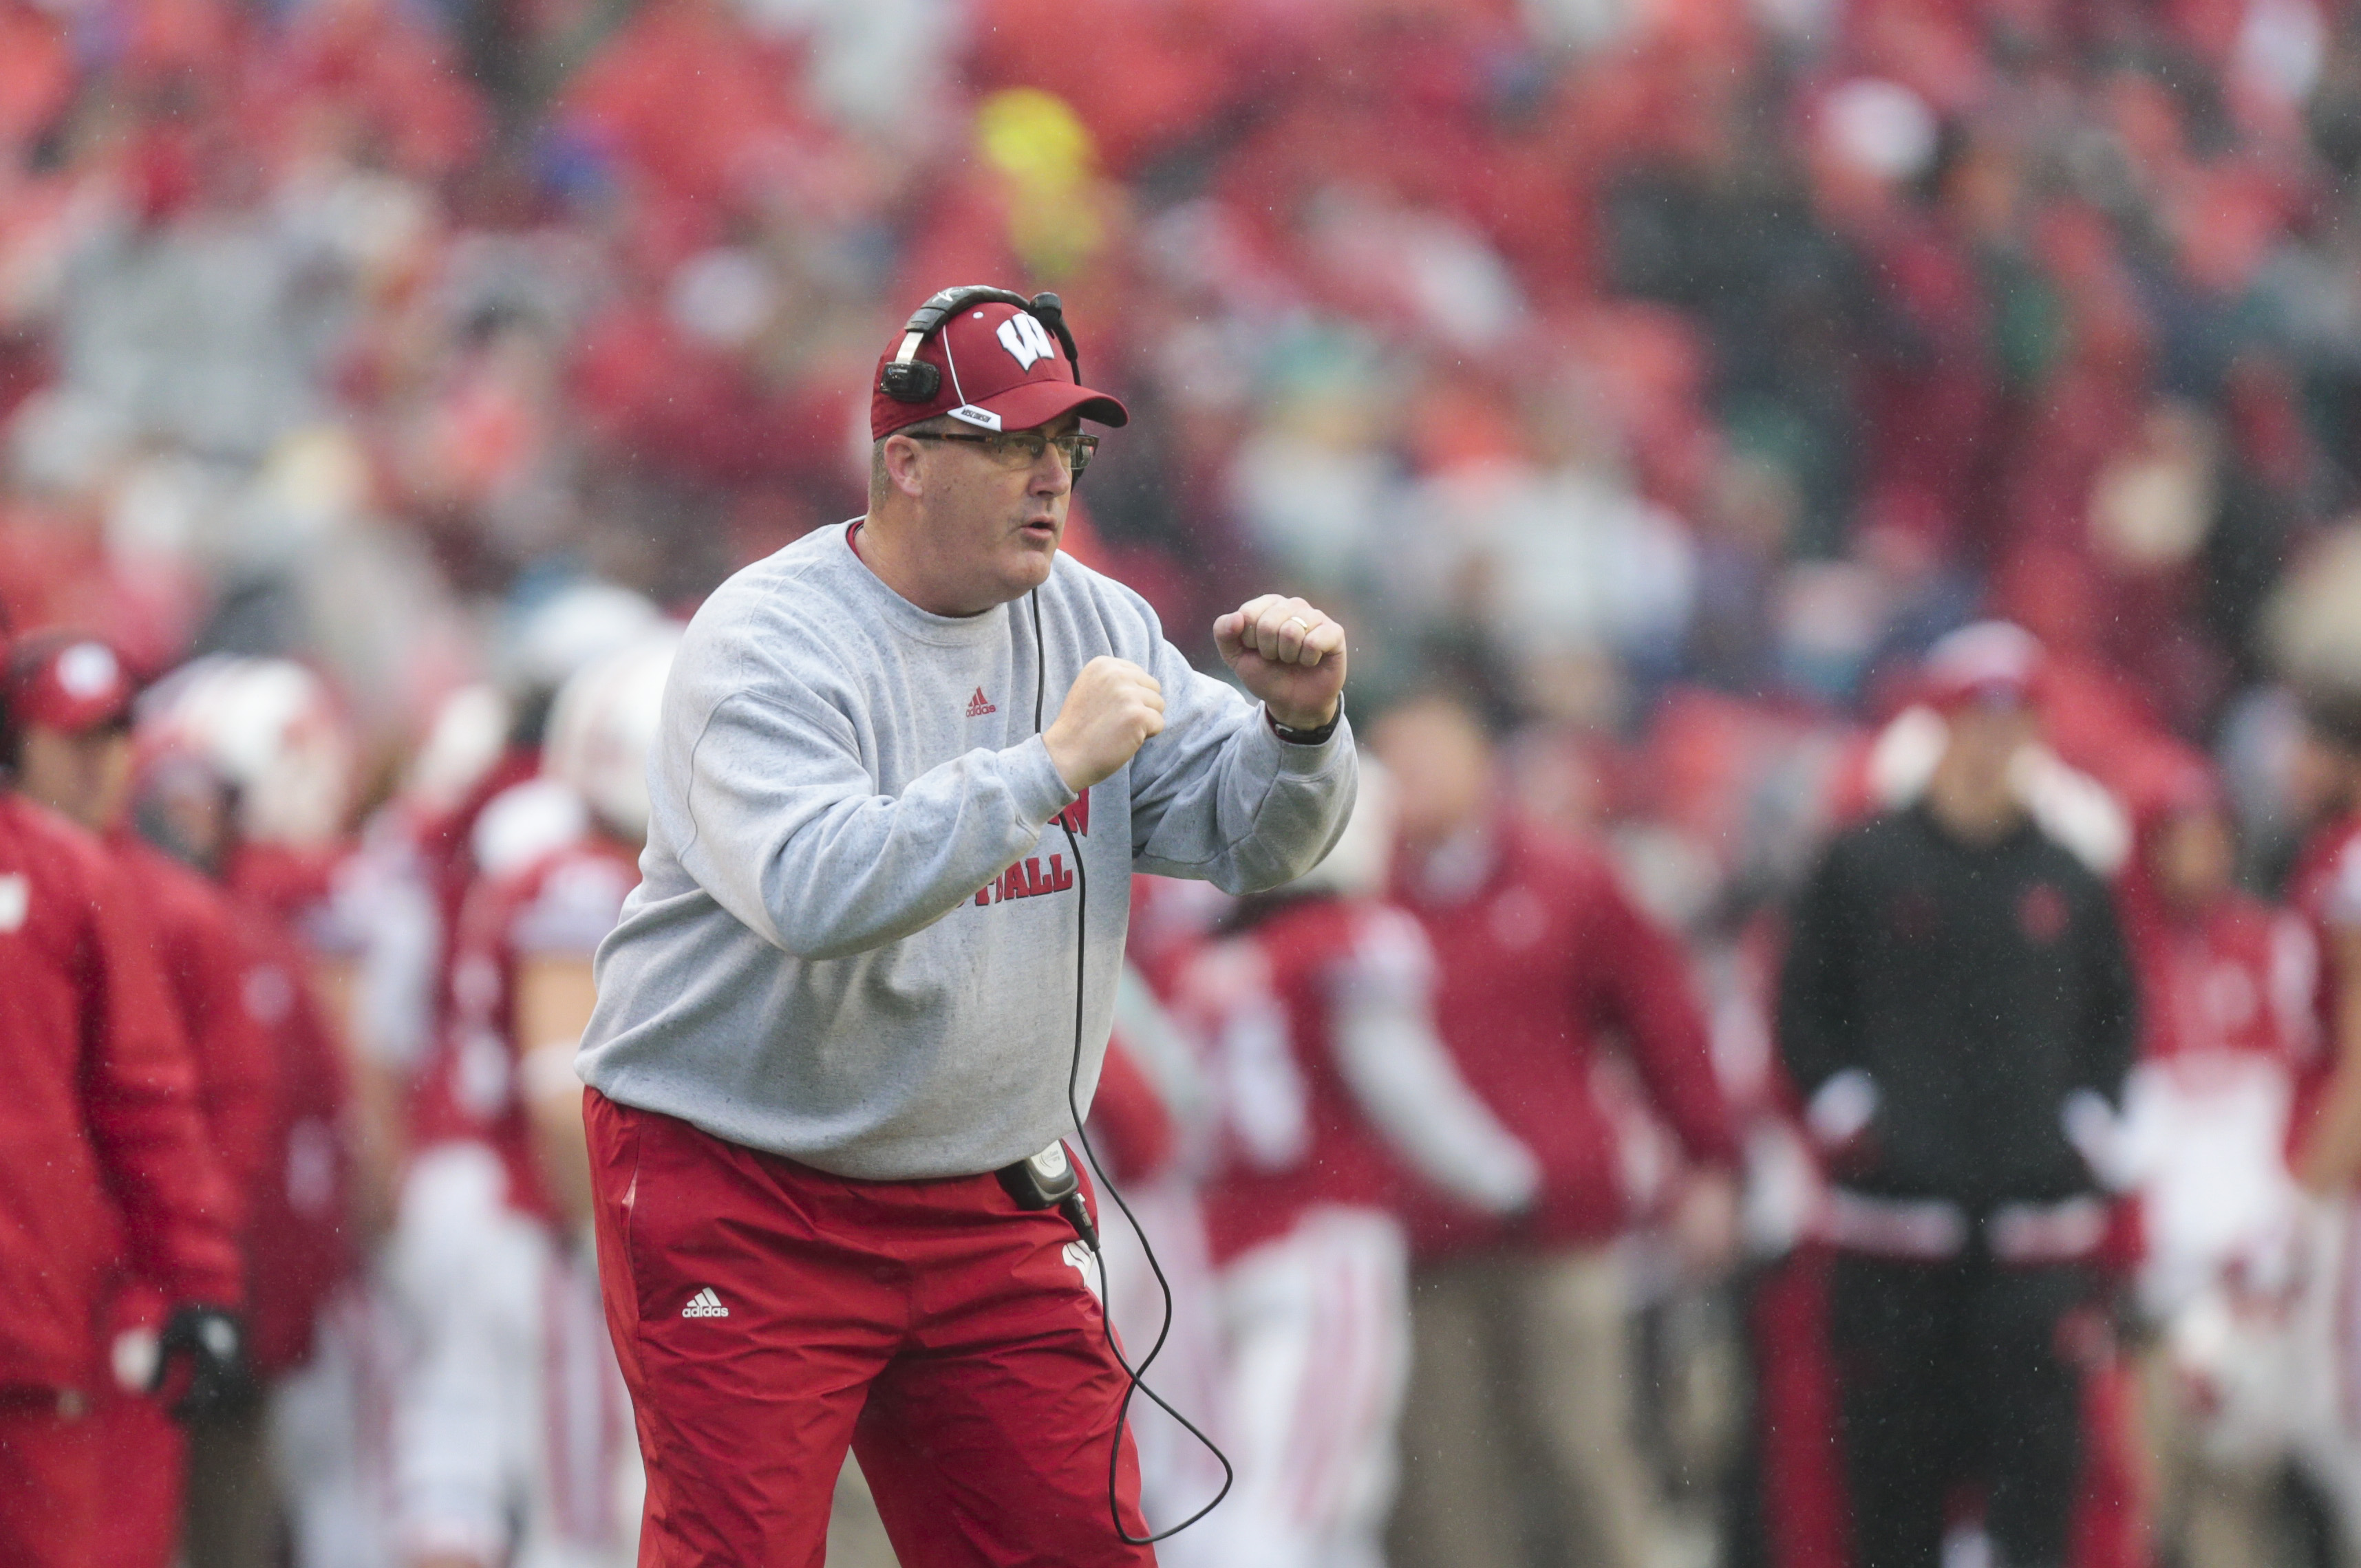 Wisconsin coach Paul Chryst cheers on his team during the first half of an NCAA college football game against Rutgers, Saturday, Oct. 31, 2015, in Madison, Wis. Wisconsin won 48-10. (AP Photo/Andy Manis)